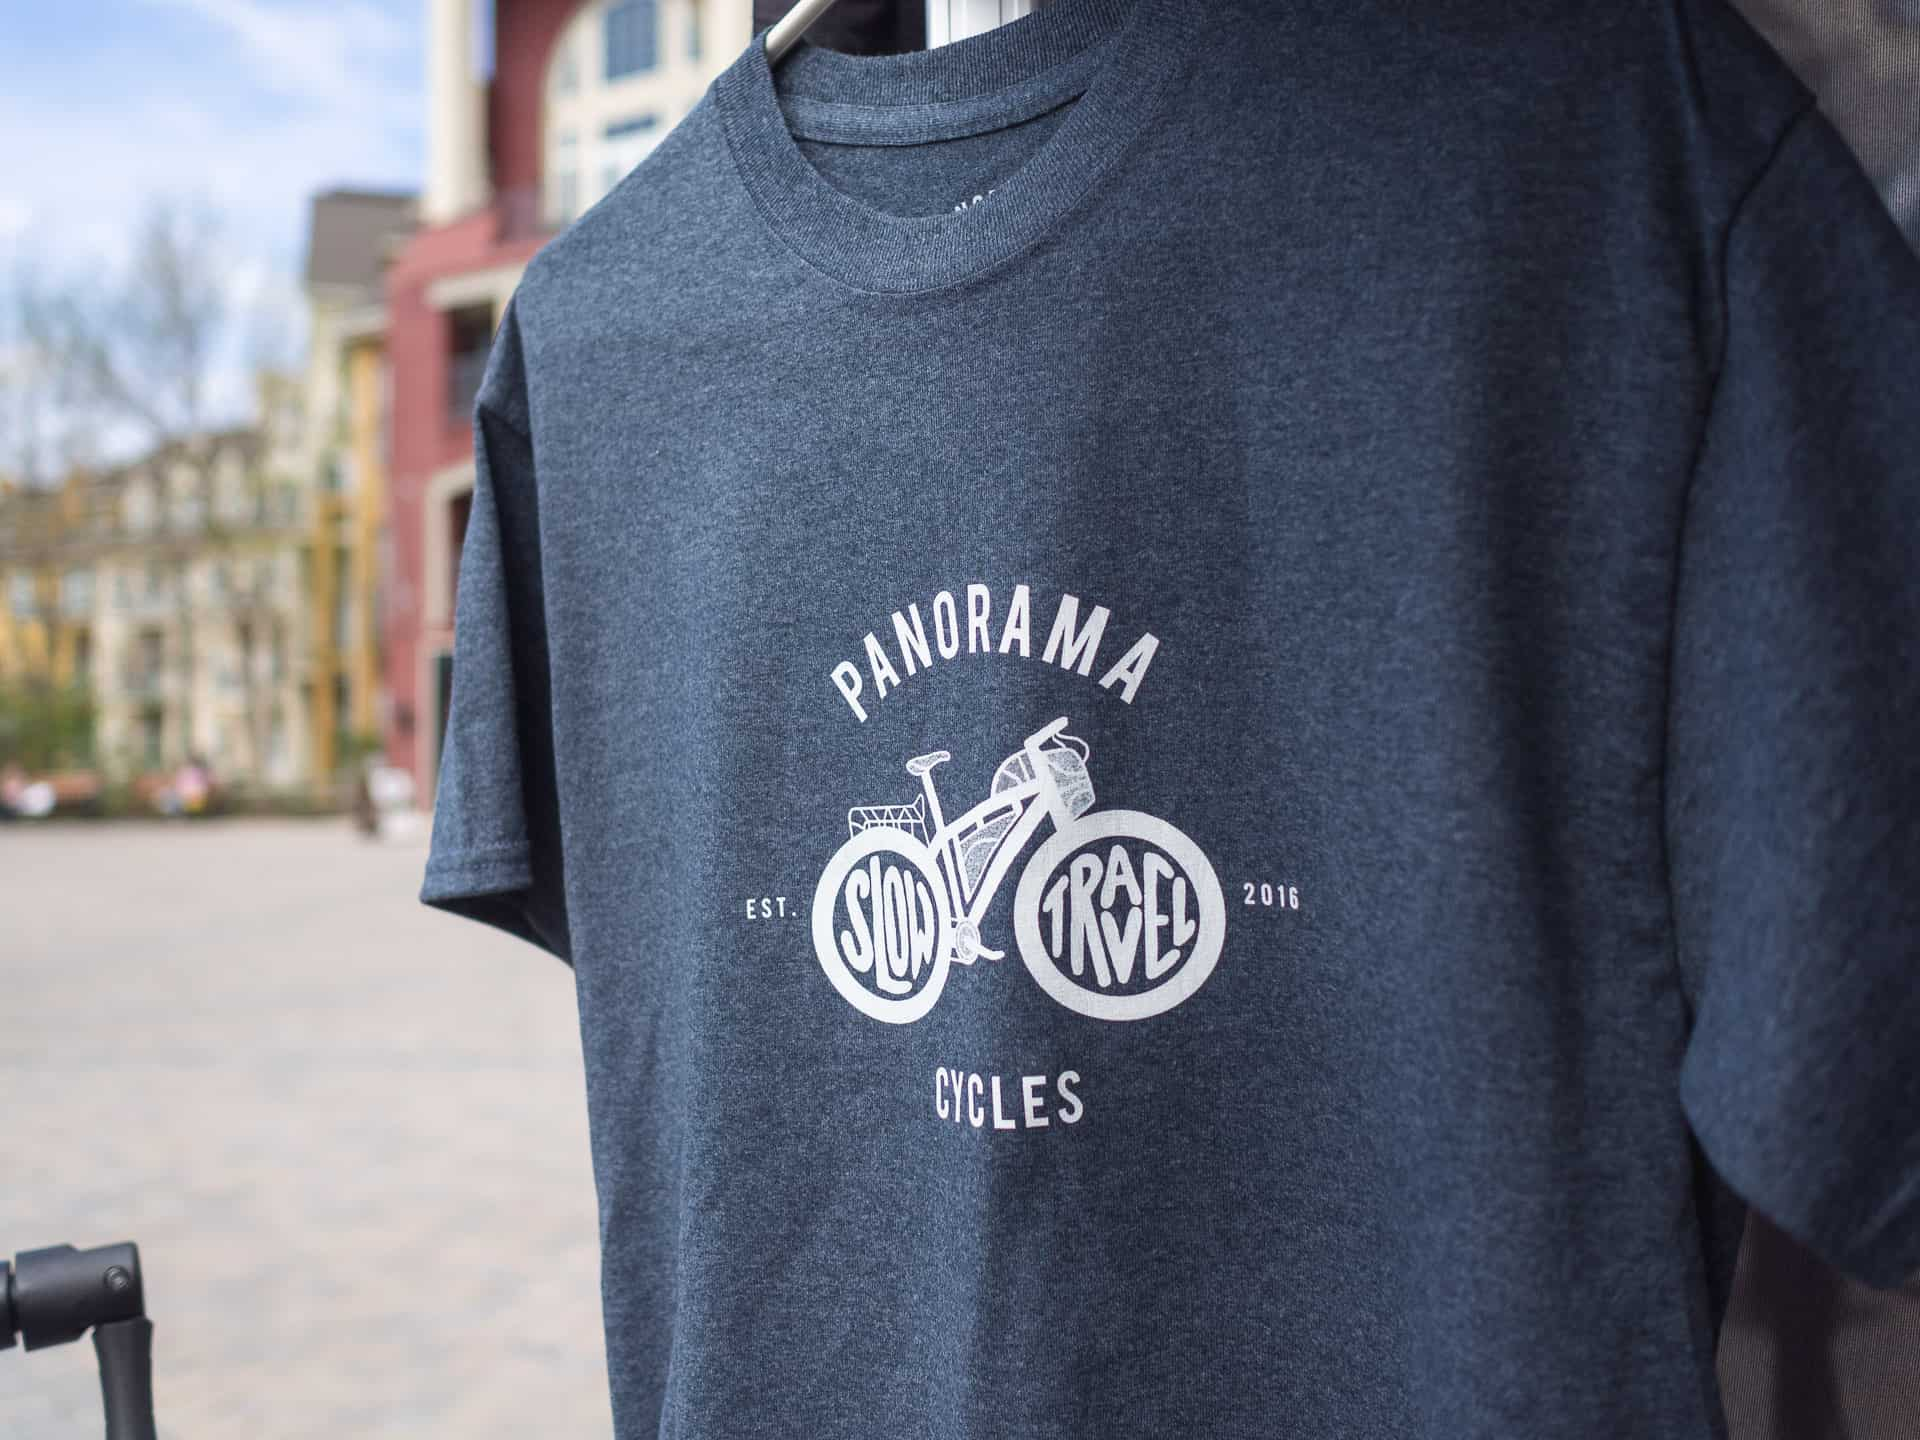 Panorama-Cycles-t-shirt